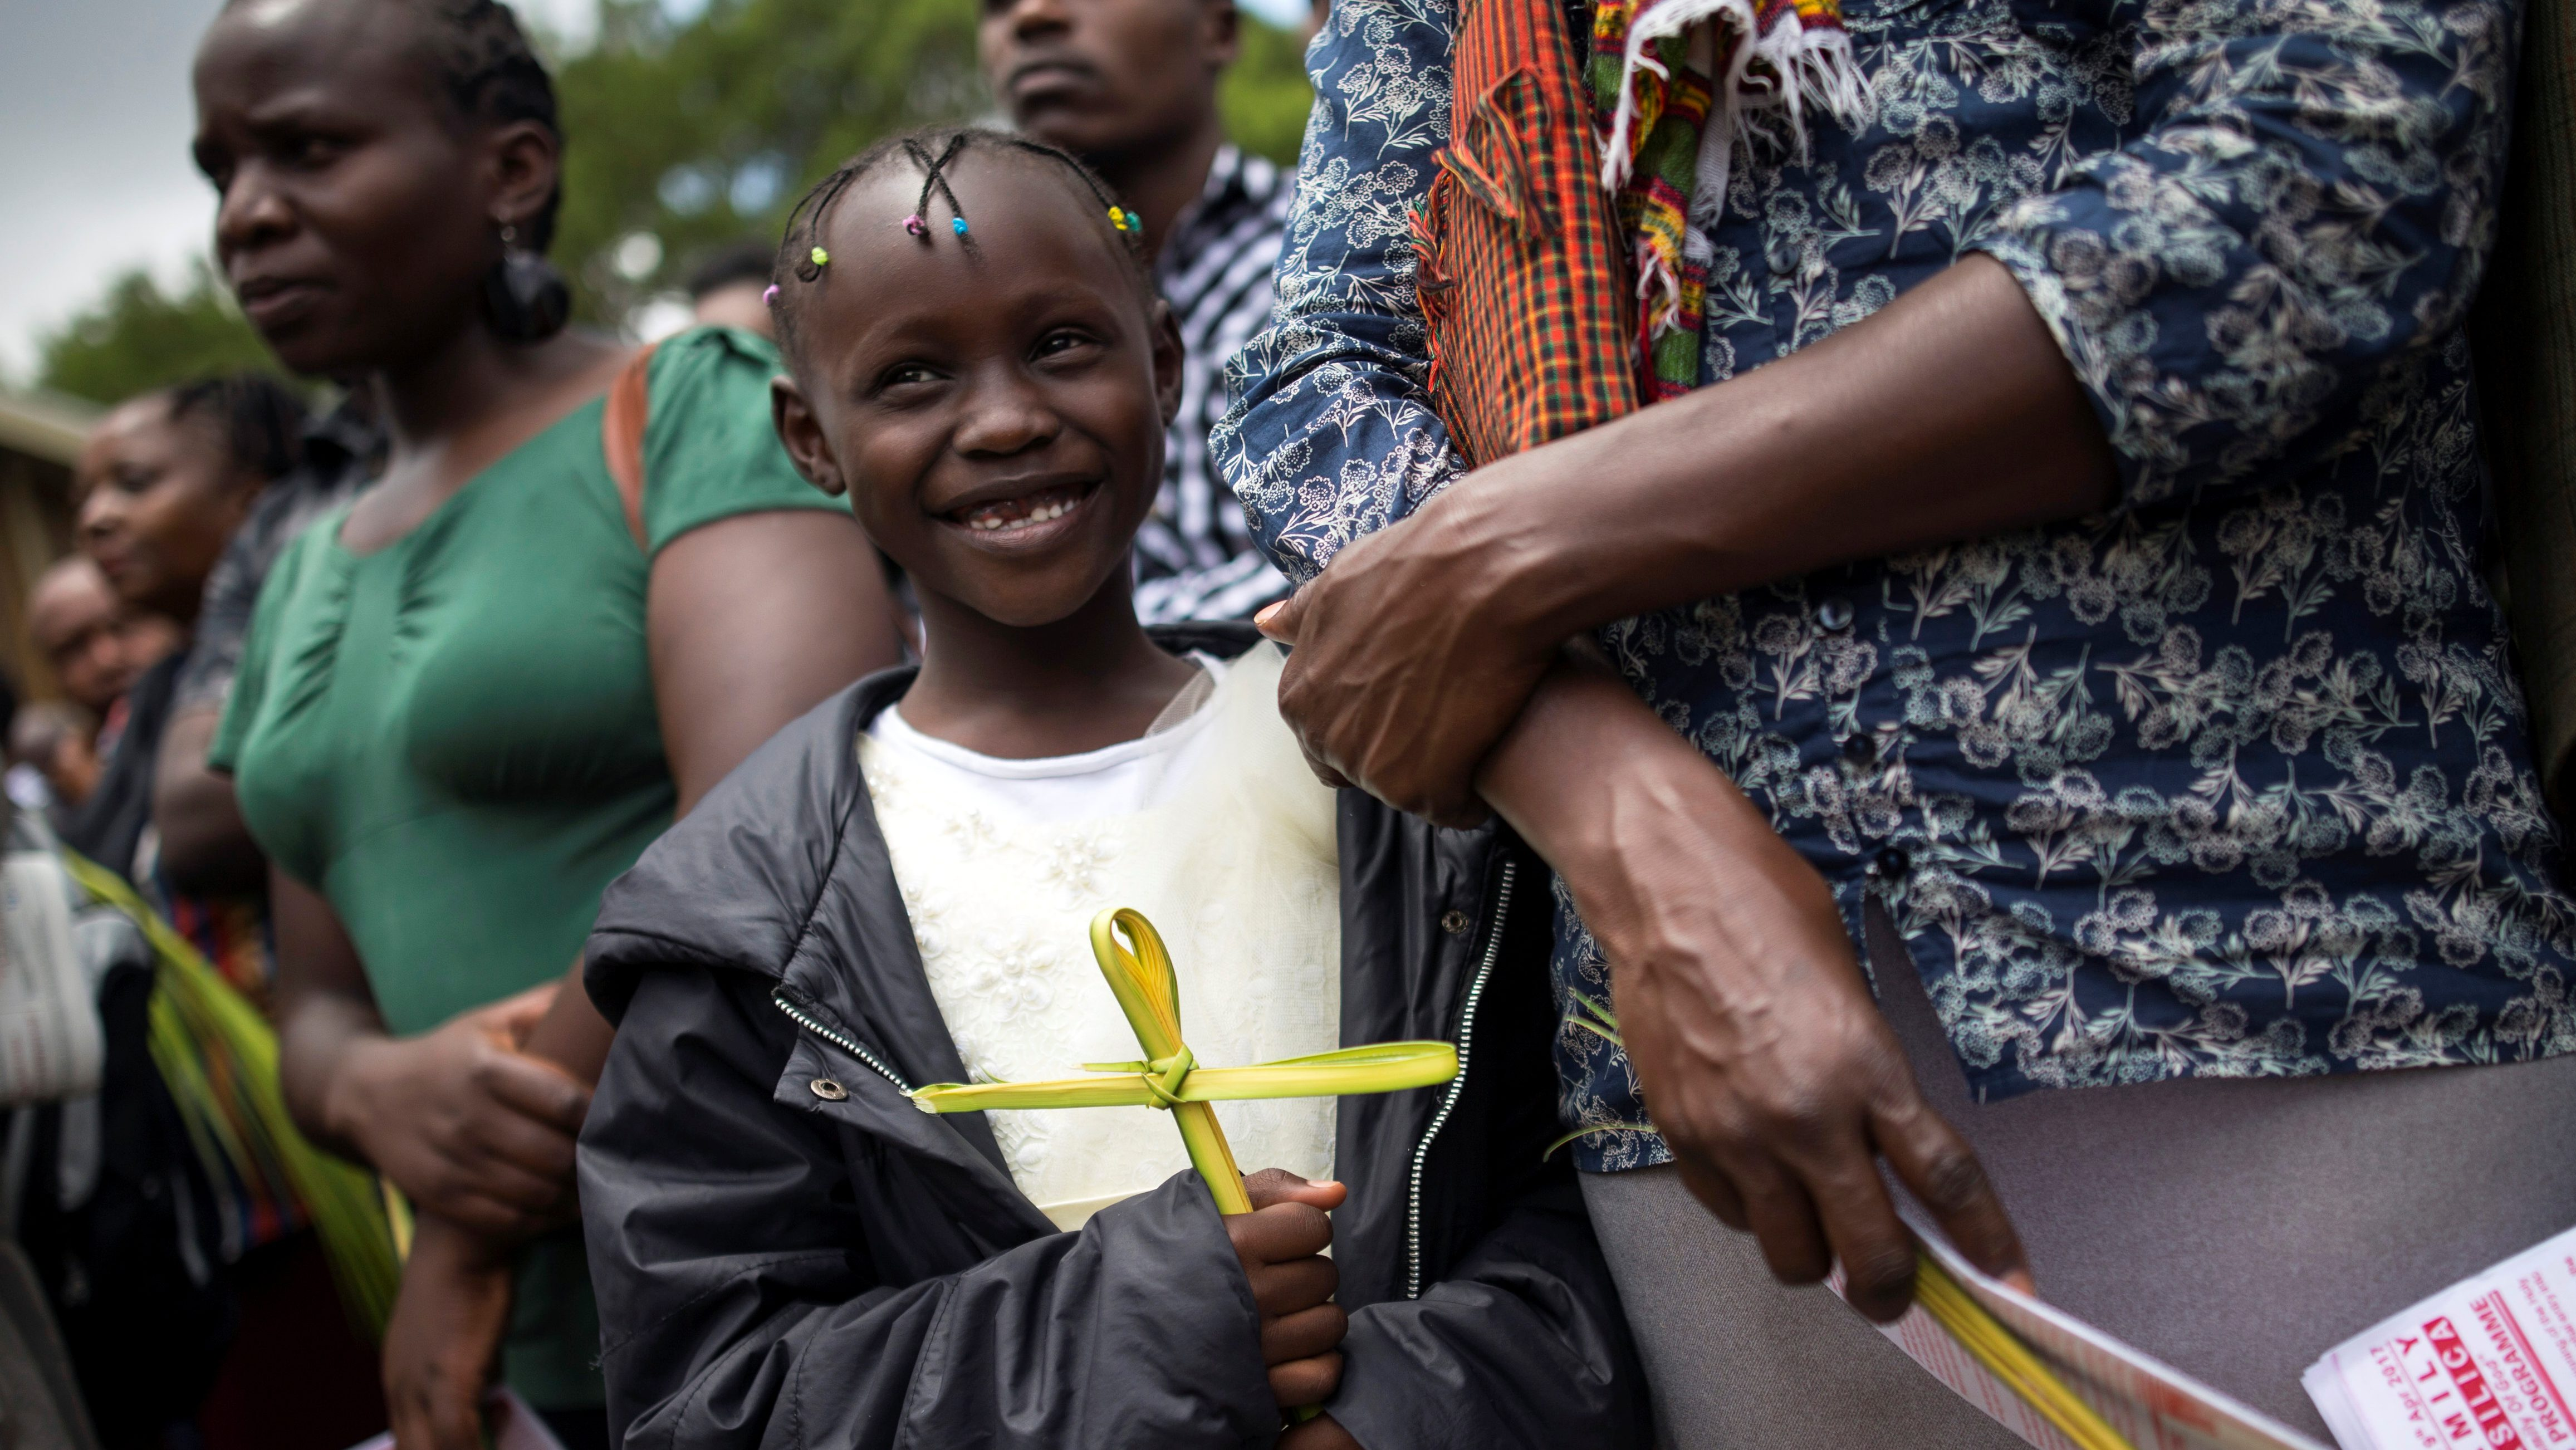 Catholic Christian worshippers take part in a Palm Sunday ceremony in Nairobi, Kenya April 9, 2017.